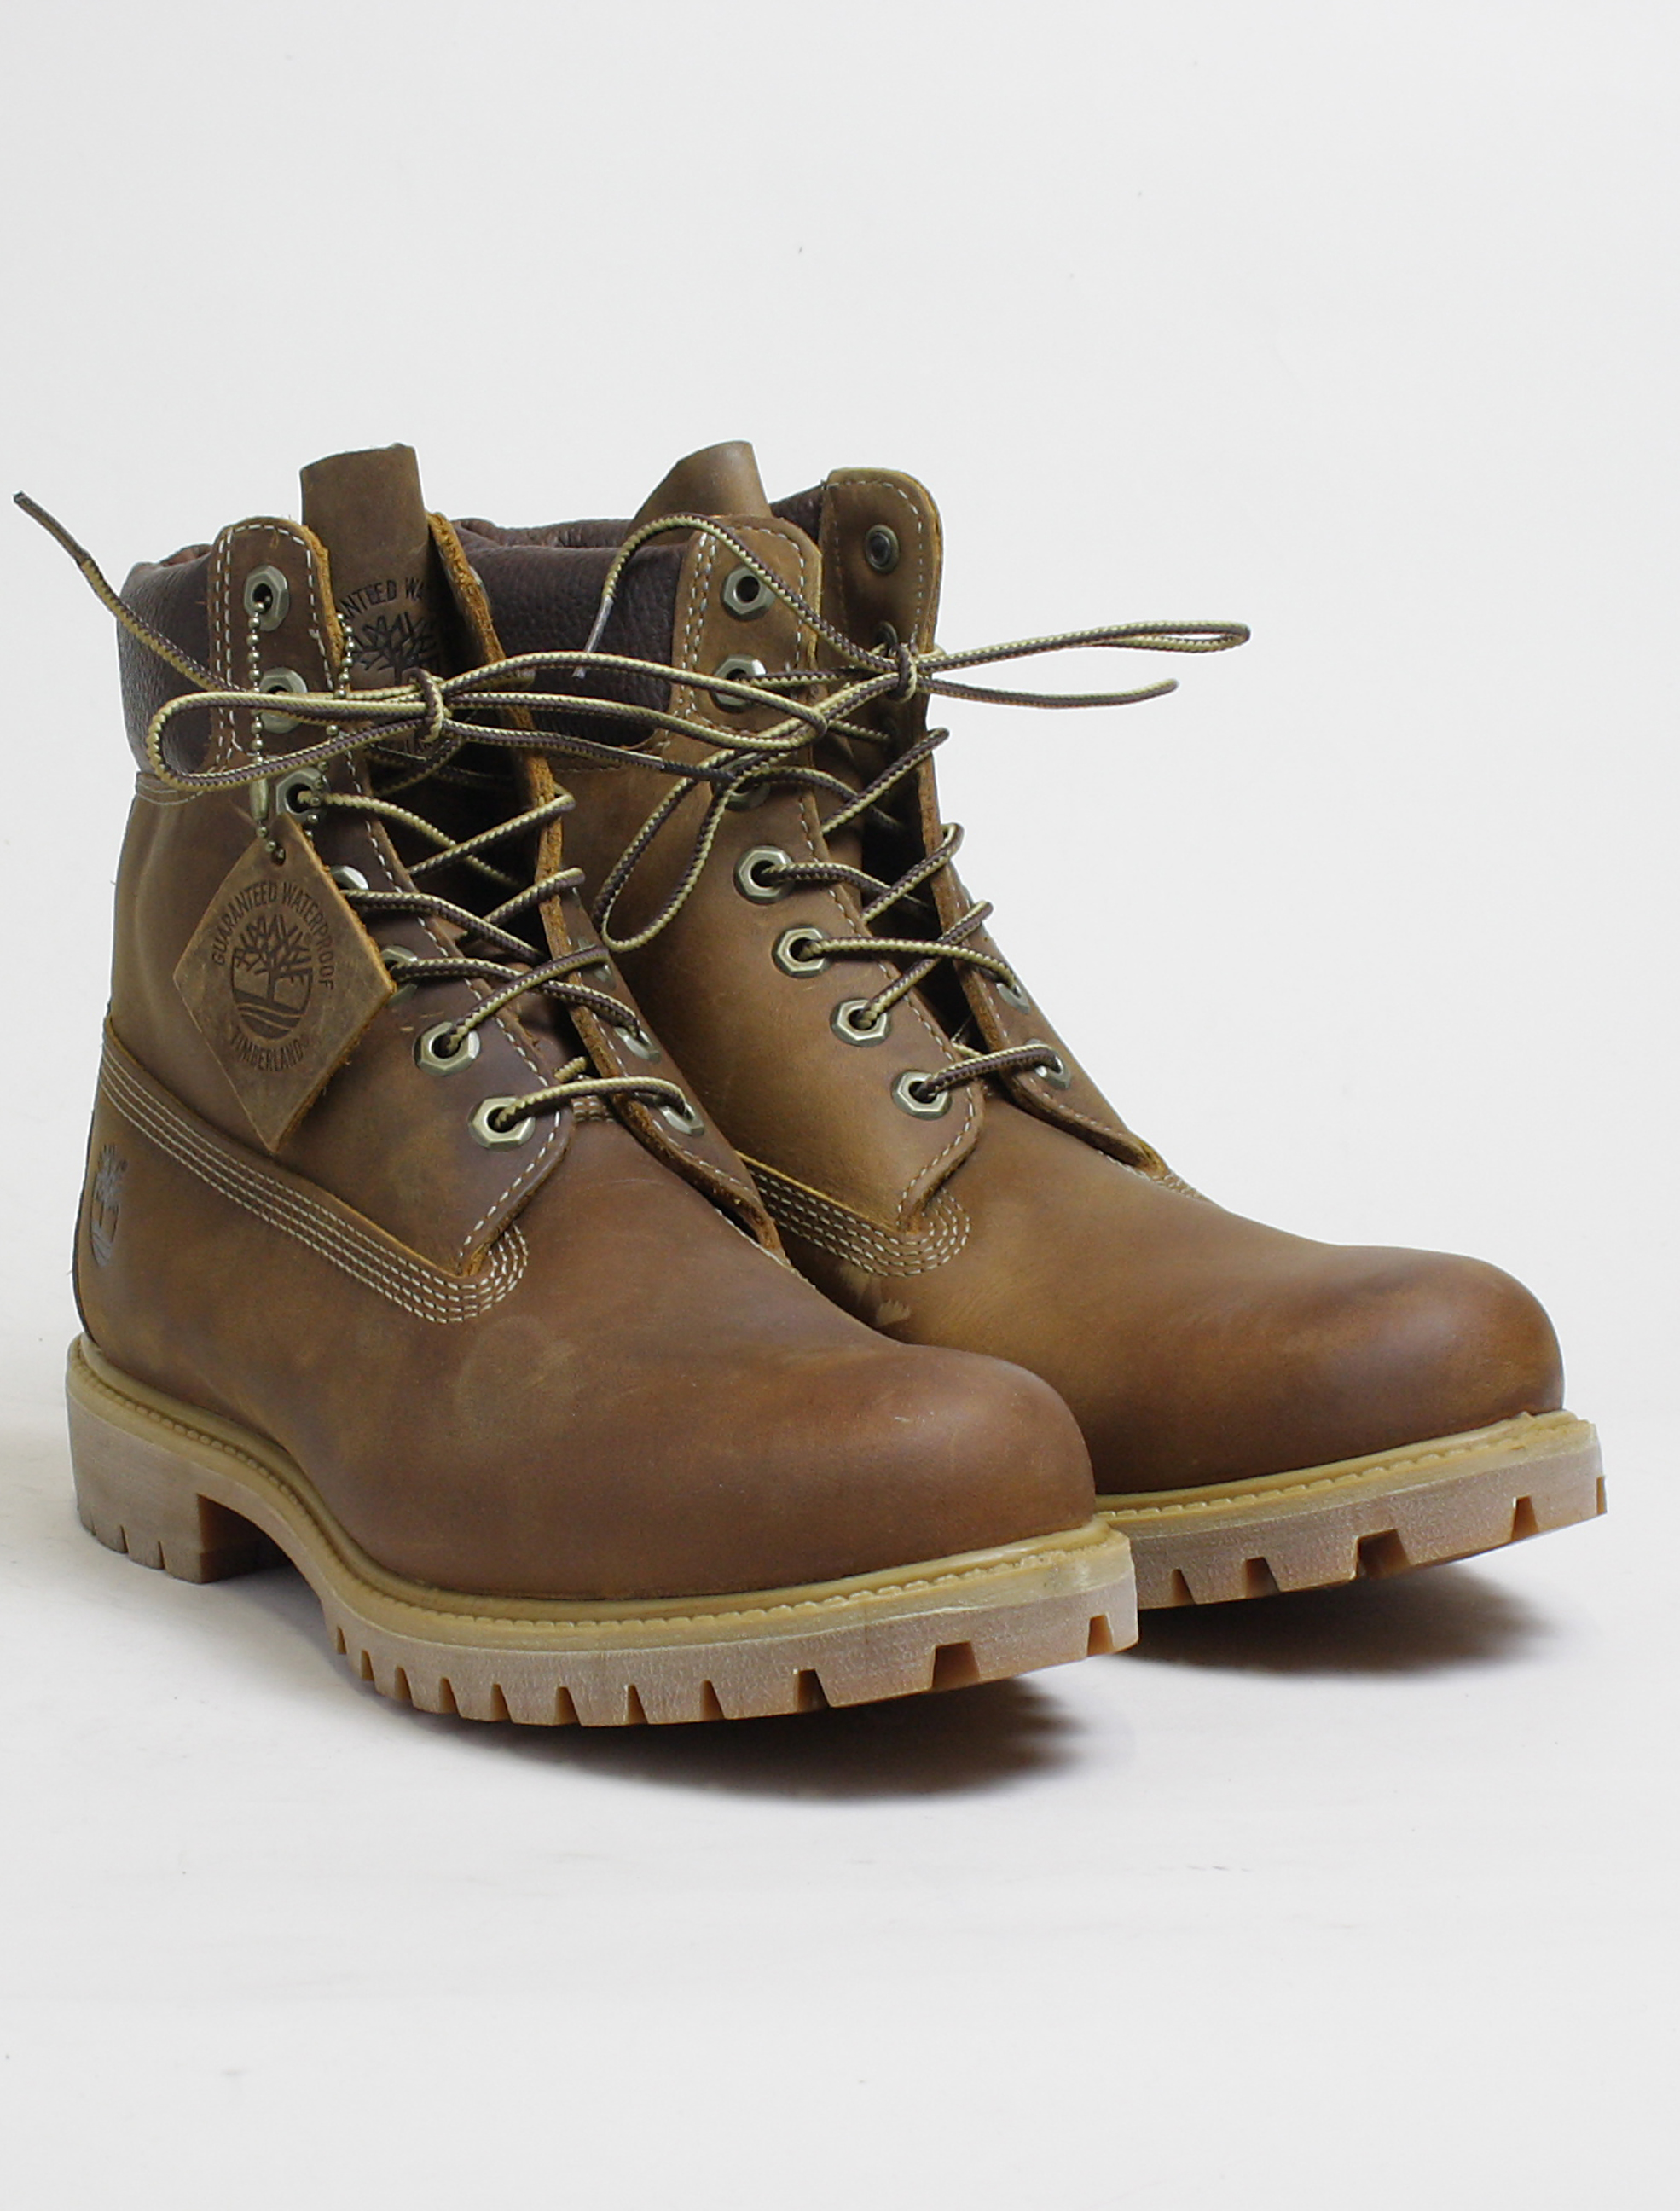 0bfc40c2e767 Timberland 6 inch heritage classic brown  Timberland